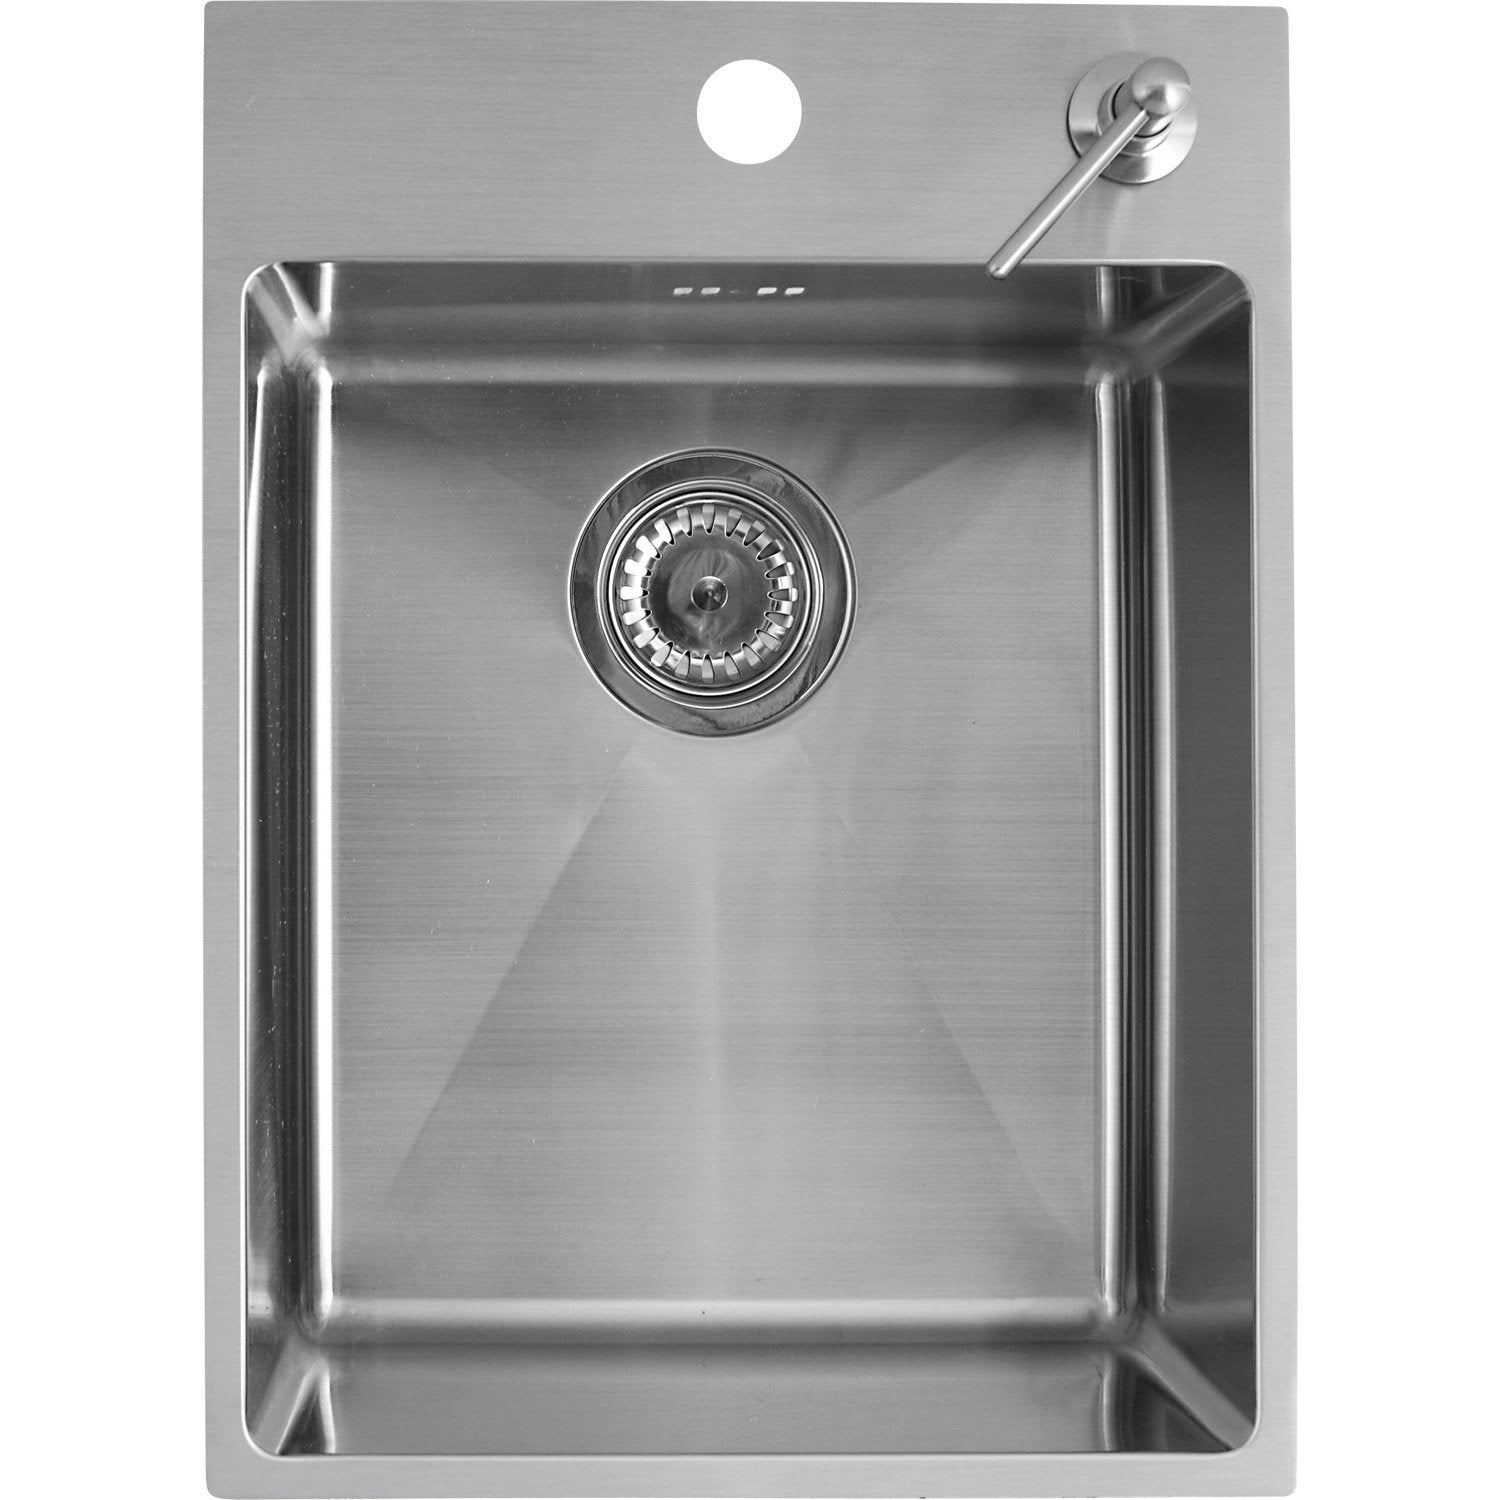 Evier encastrer inox onyx 1 cuve leroy merlin for Evier simple cuve